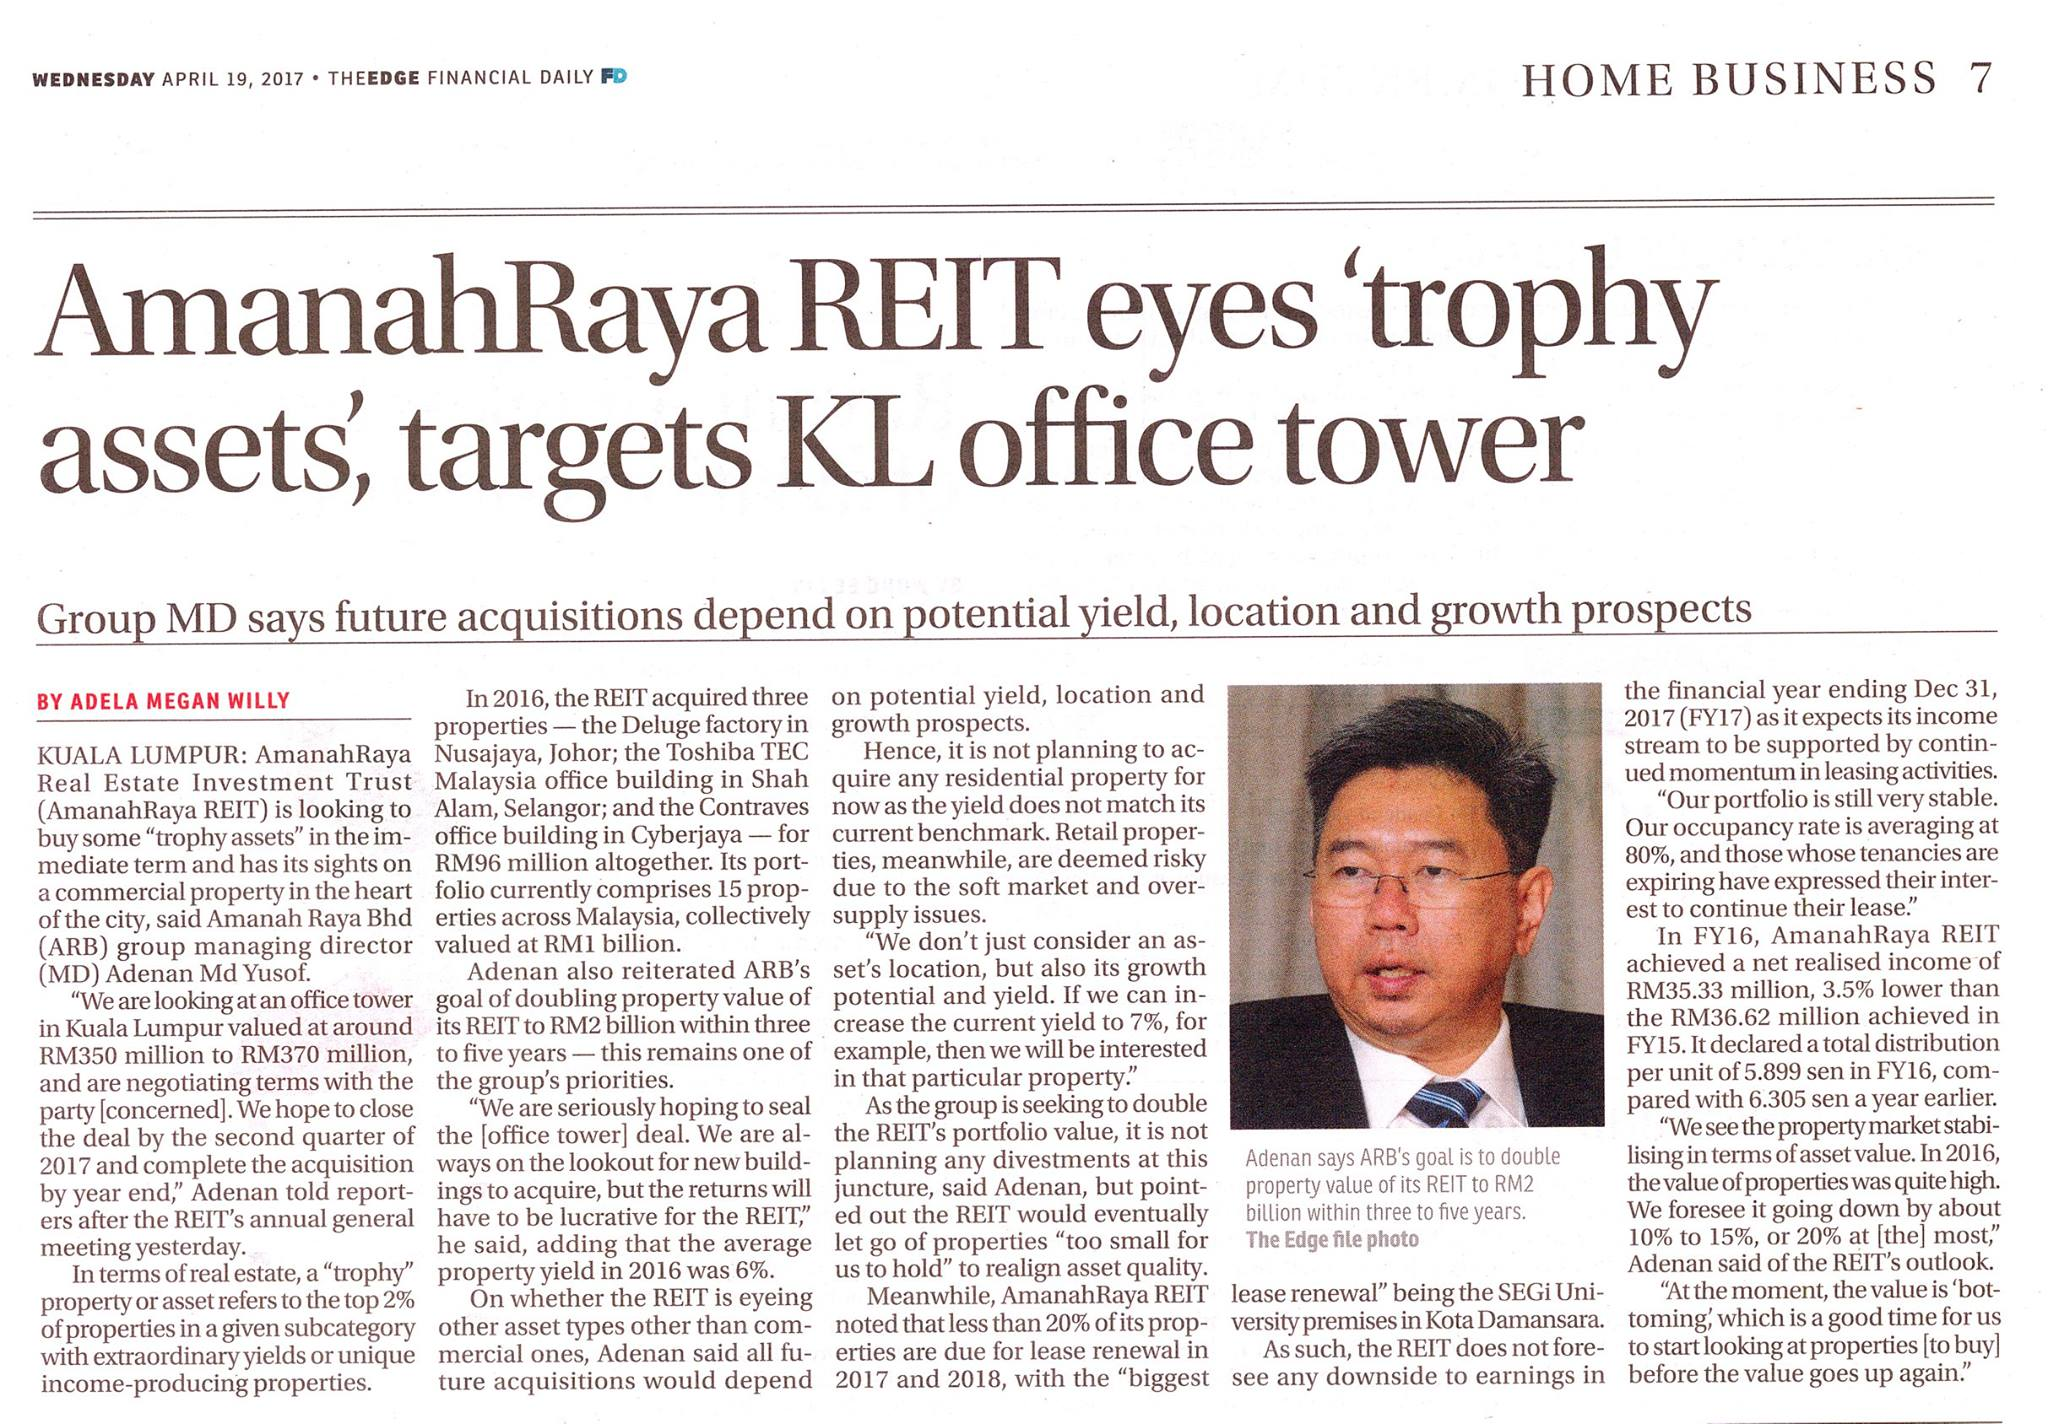 AmanahRaya Real Estate Investment Trust (AmanahRaya REIT) is looking to buy some